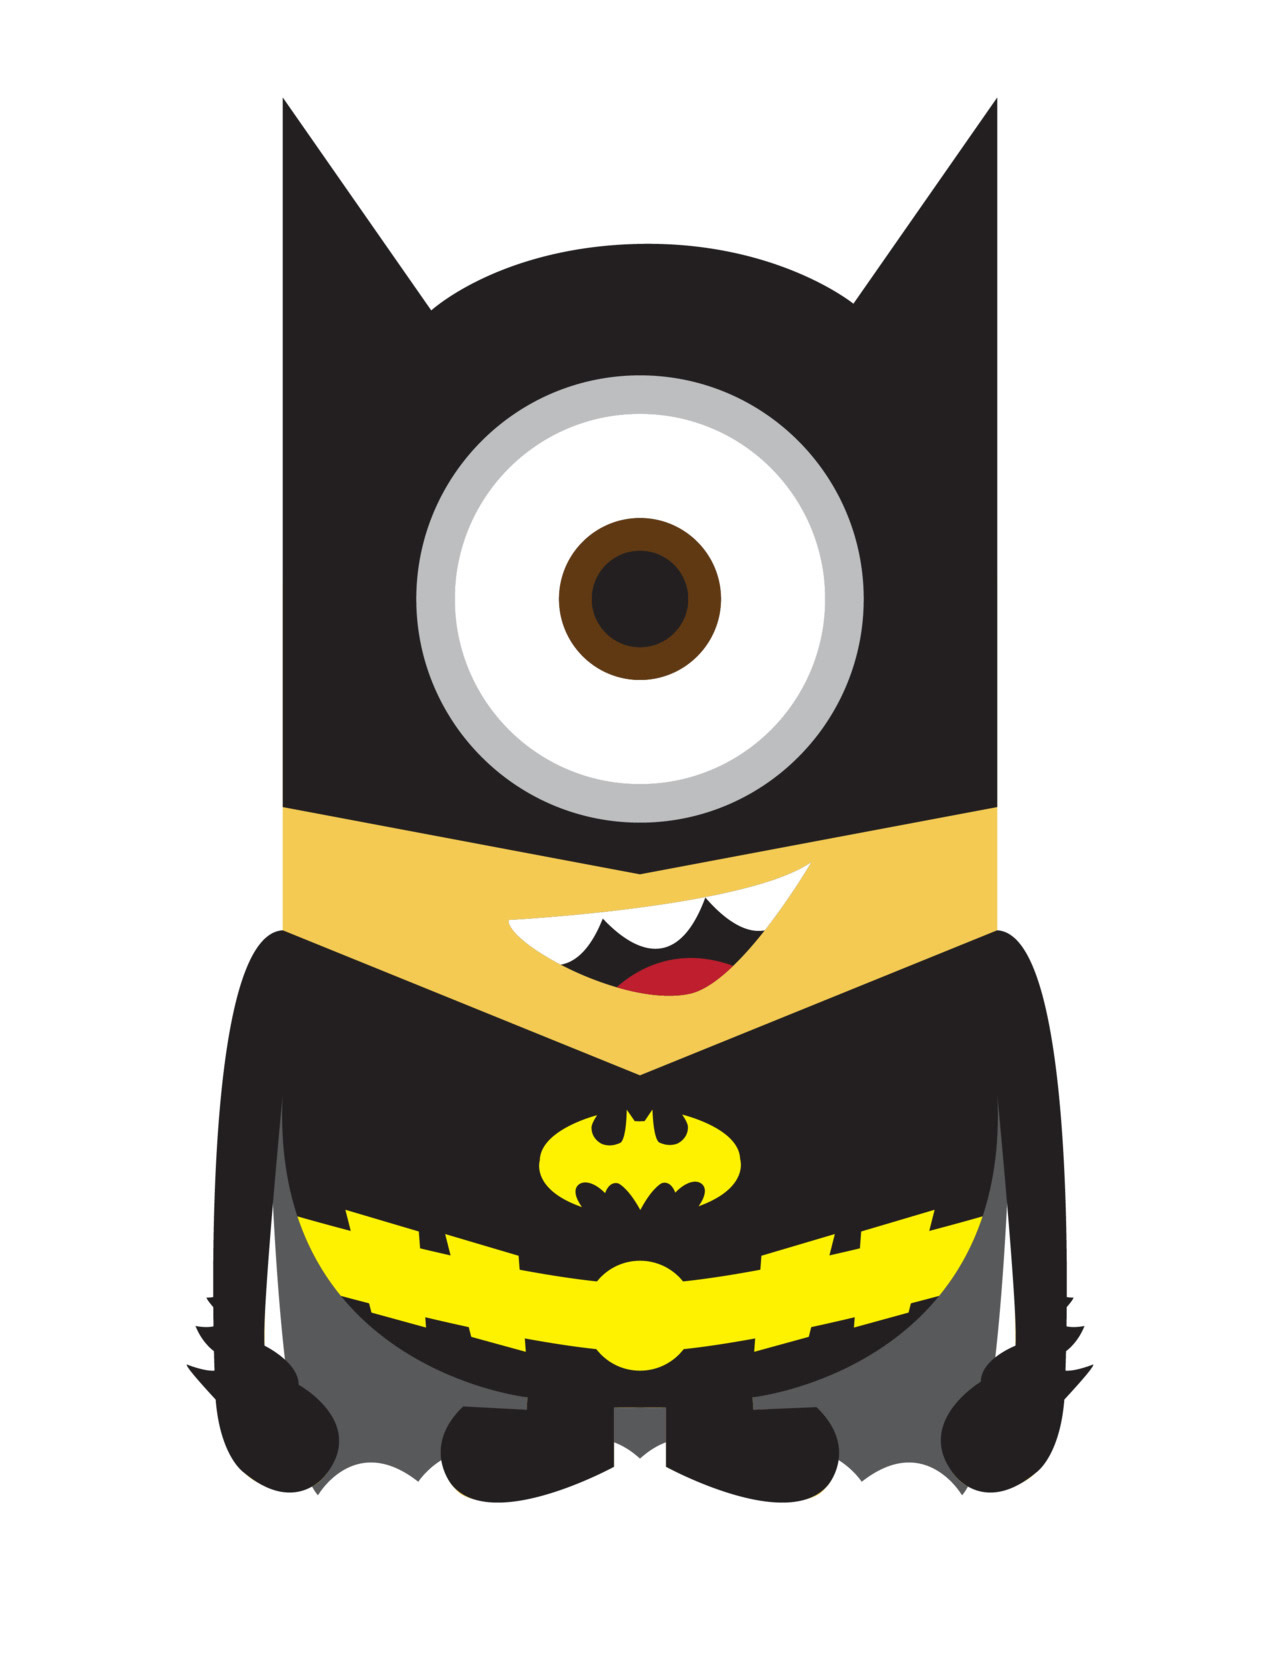 1280x1656 Despicable Me 2 Minions As Adorable Superheroes